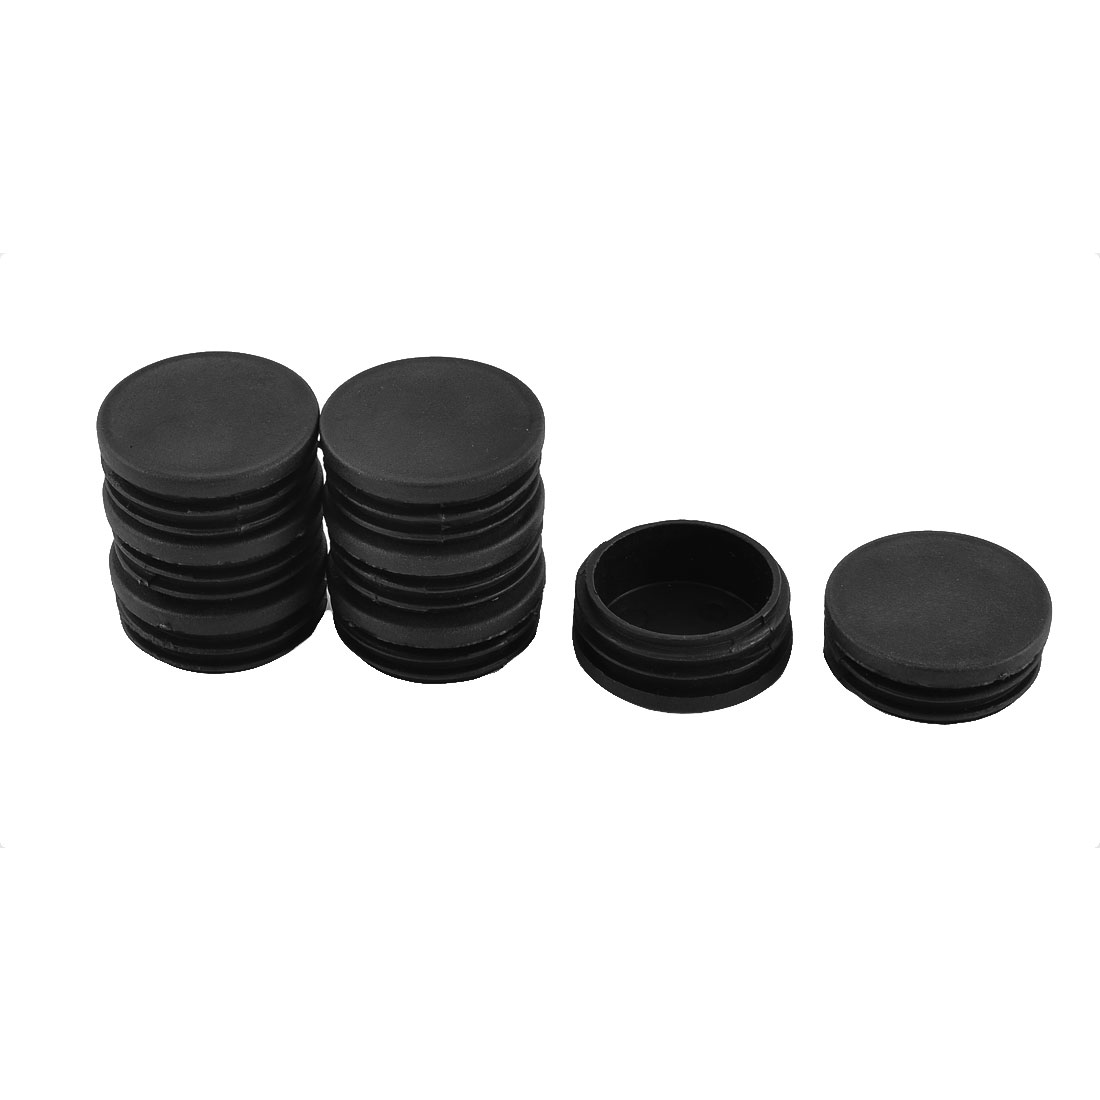 Table Chair Foot Plastic Round Tube Insert Cap Cover Black 50mm Dia 8pcs